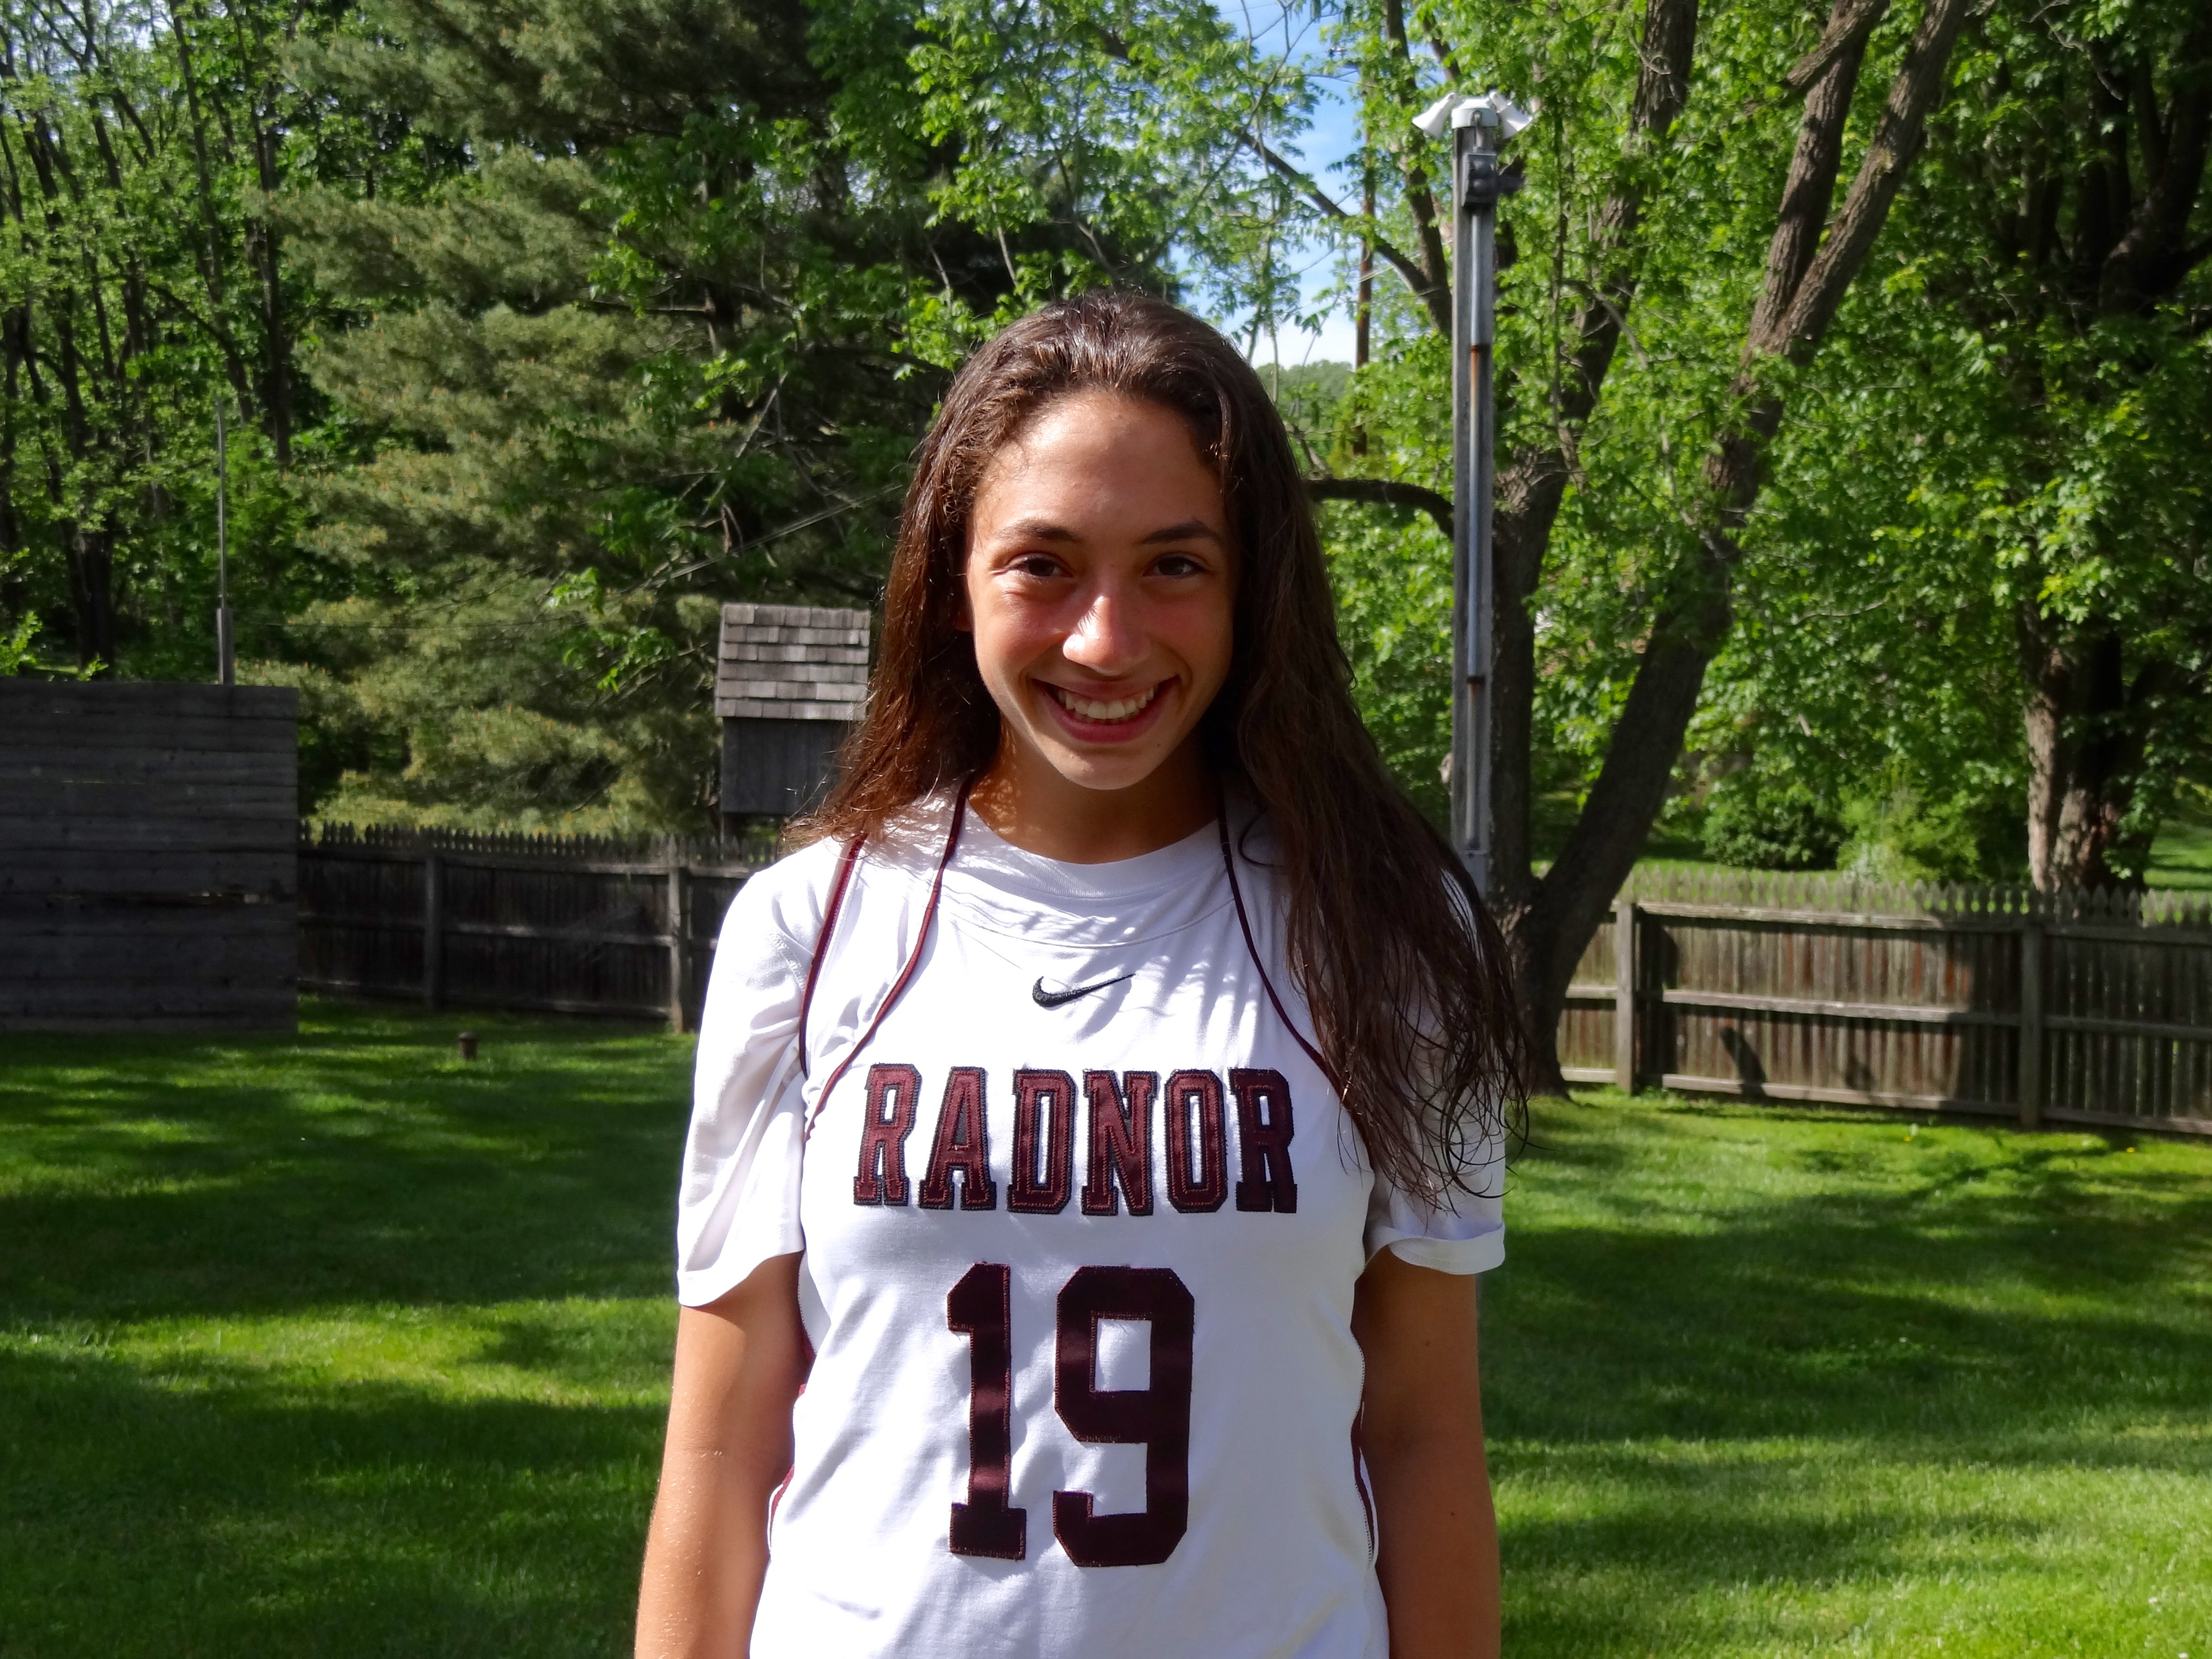 radnor single girls View the schedule, scores, league standings, rankings, roster, articles, photos and video highlights for the archbishop carroll patriots girls basketball team on maxpreps.